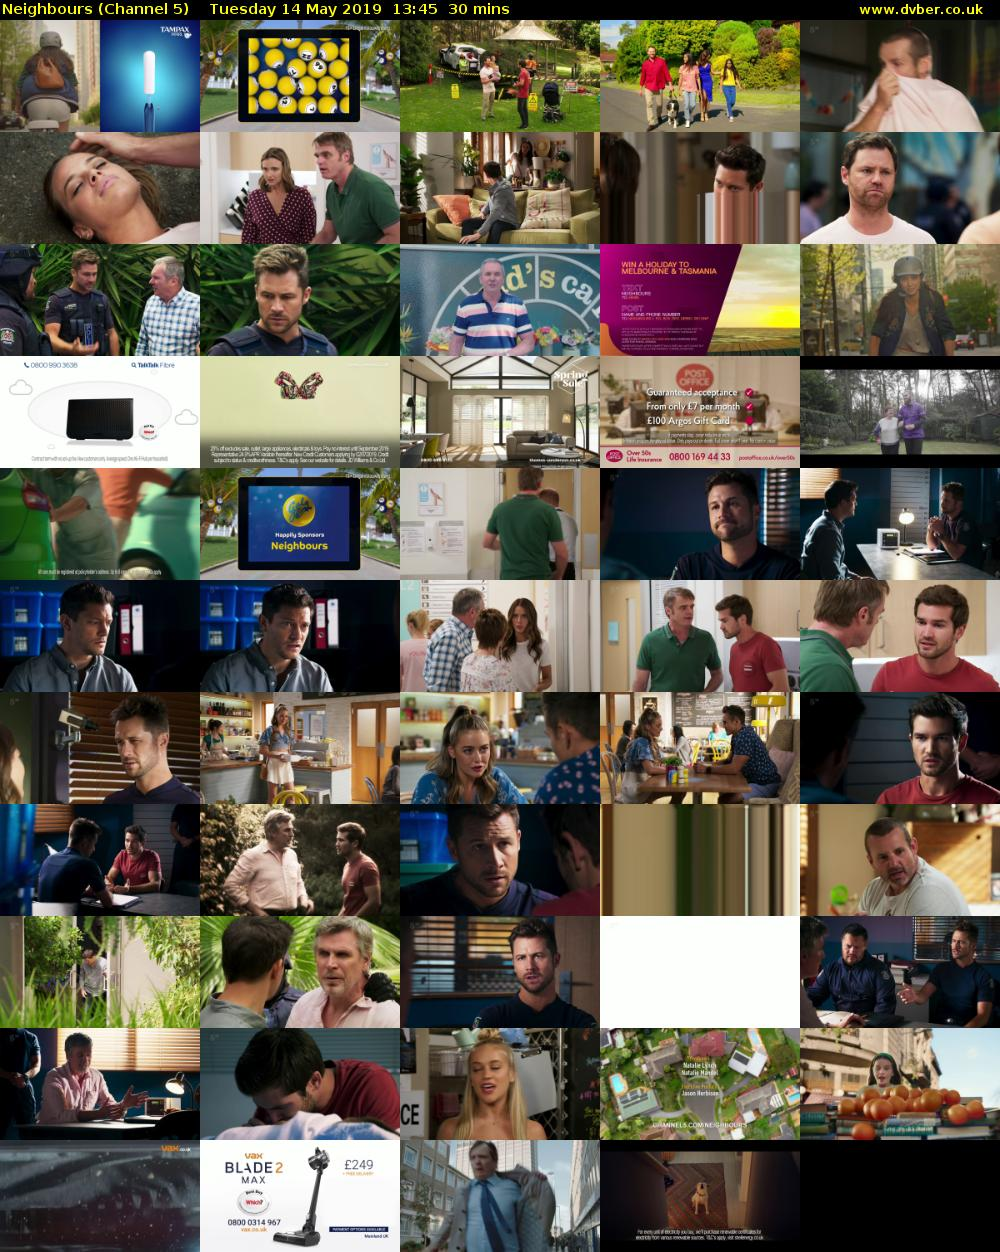 Neighbours (Channel 5) Tuesday 14 May 2019 13:45 - 14:15